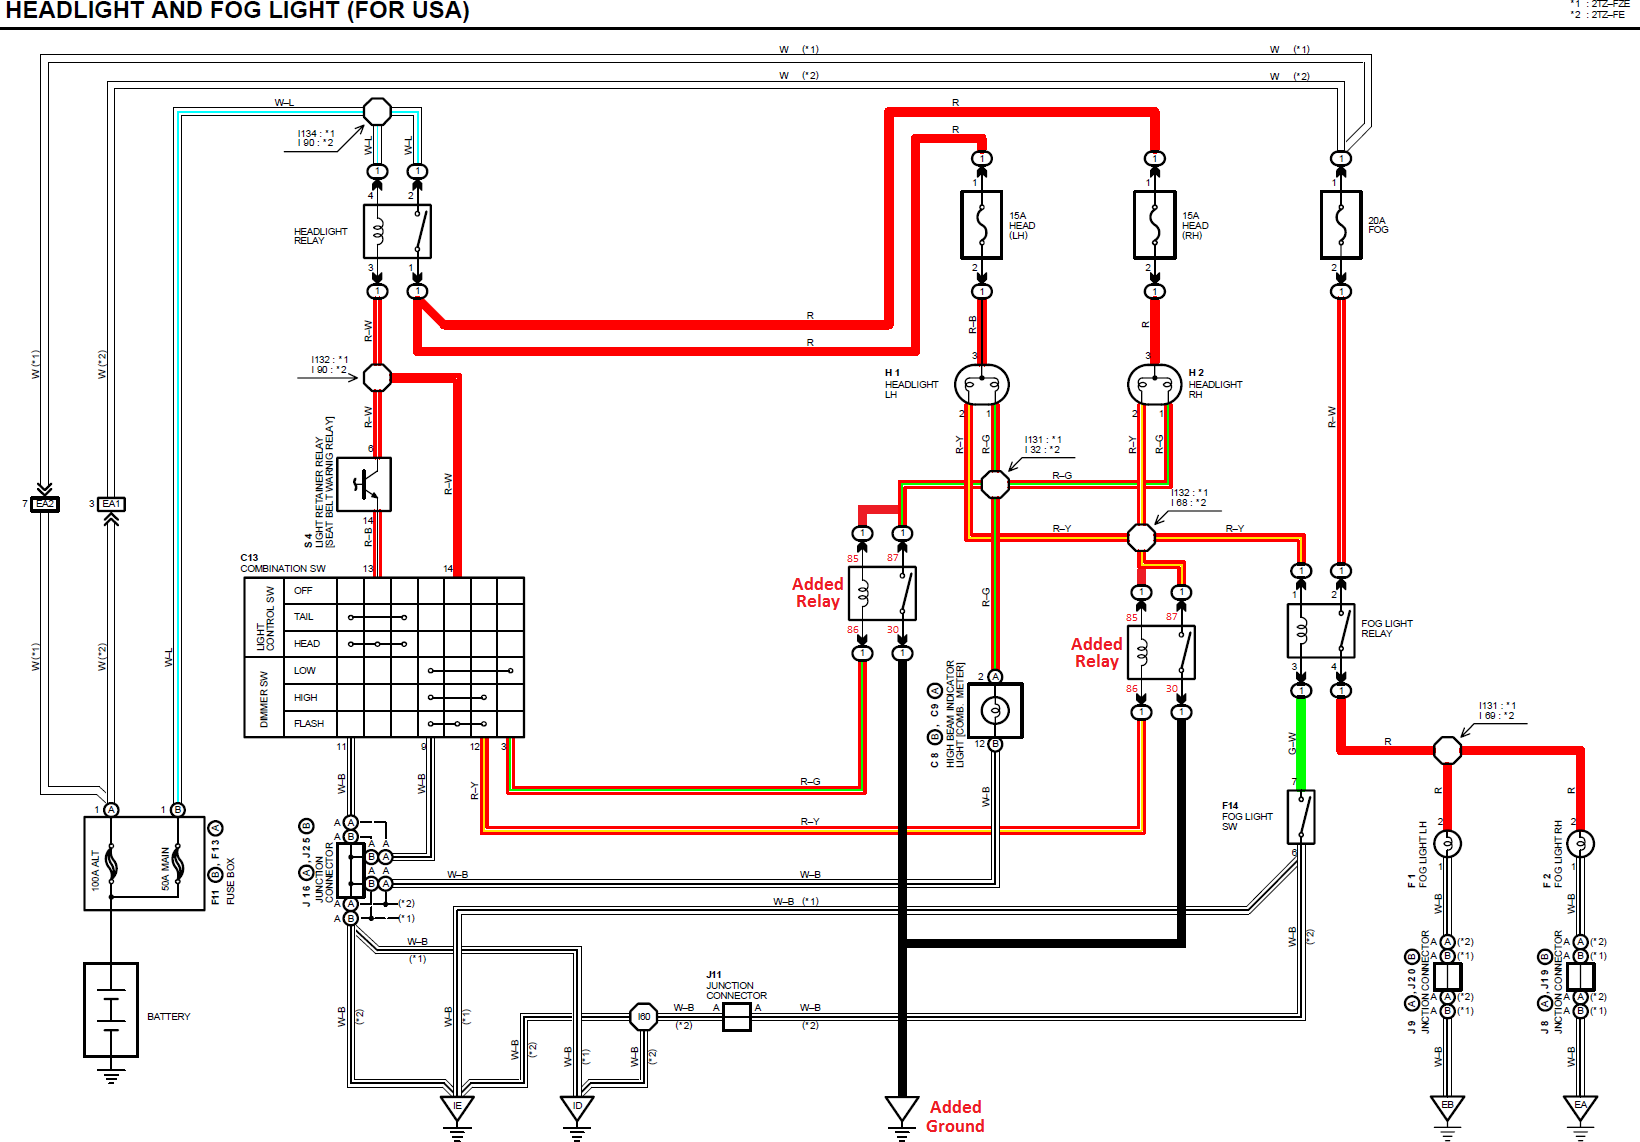 91 Previa Headlight Circuit Diagram - wiring diagram on the net on